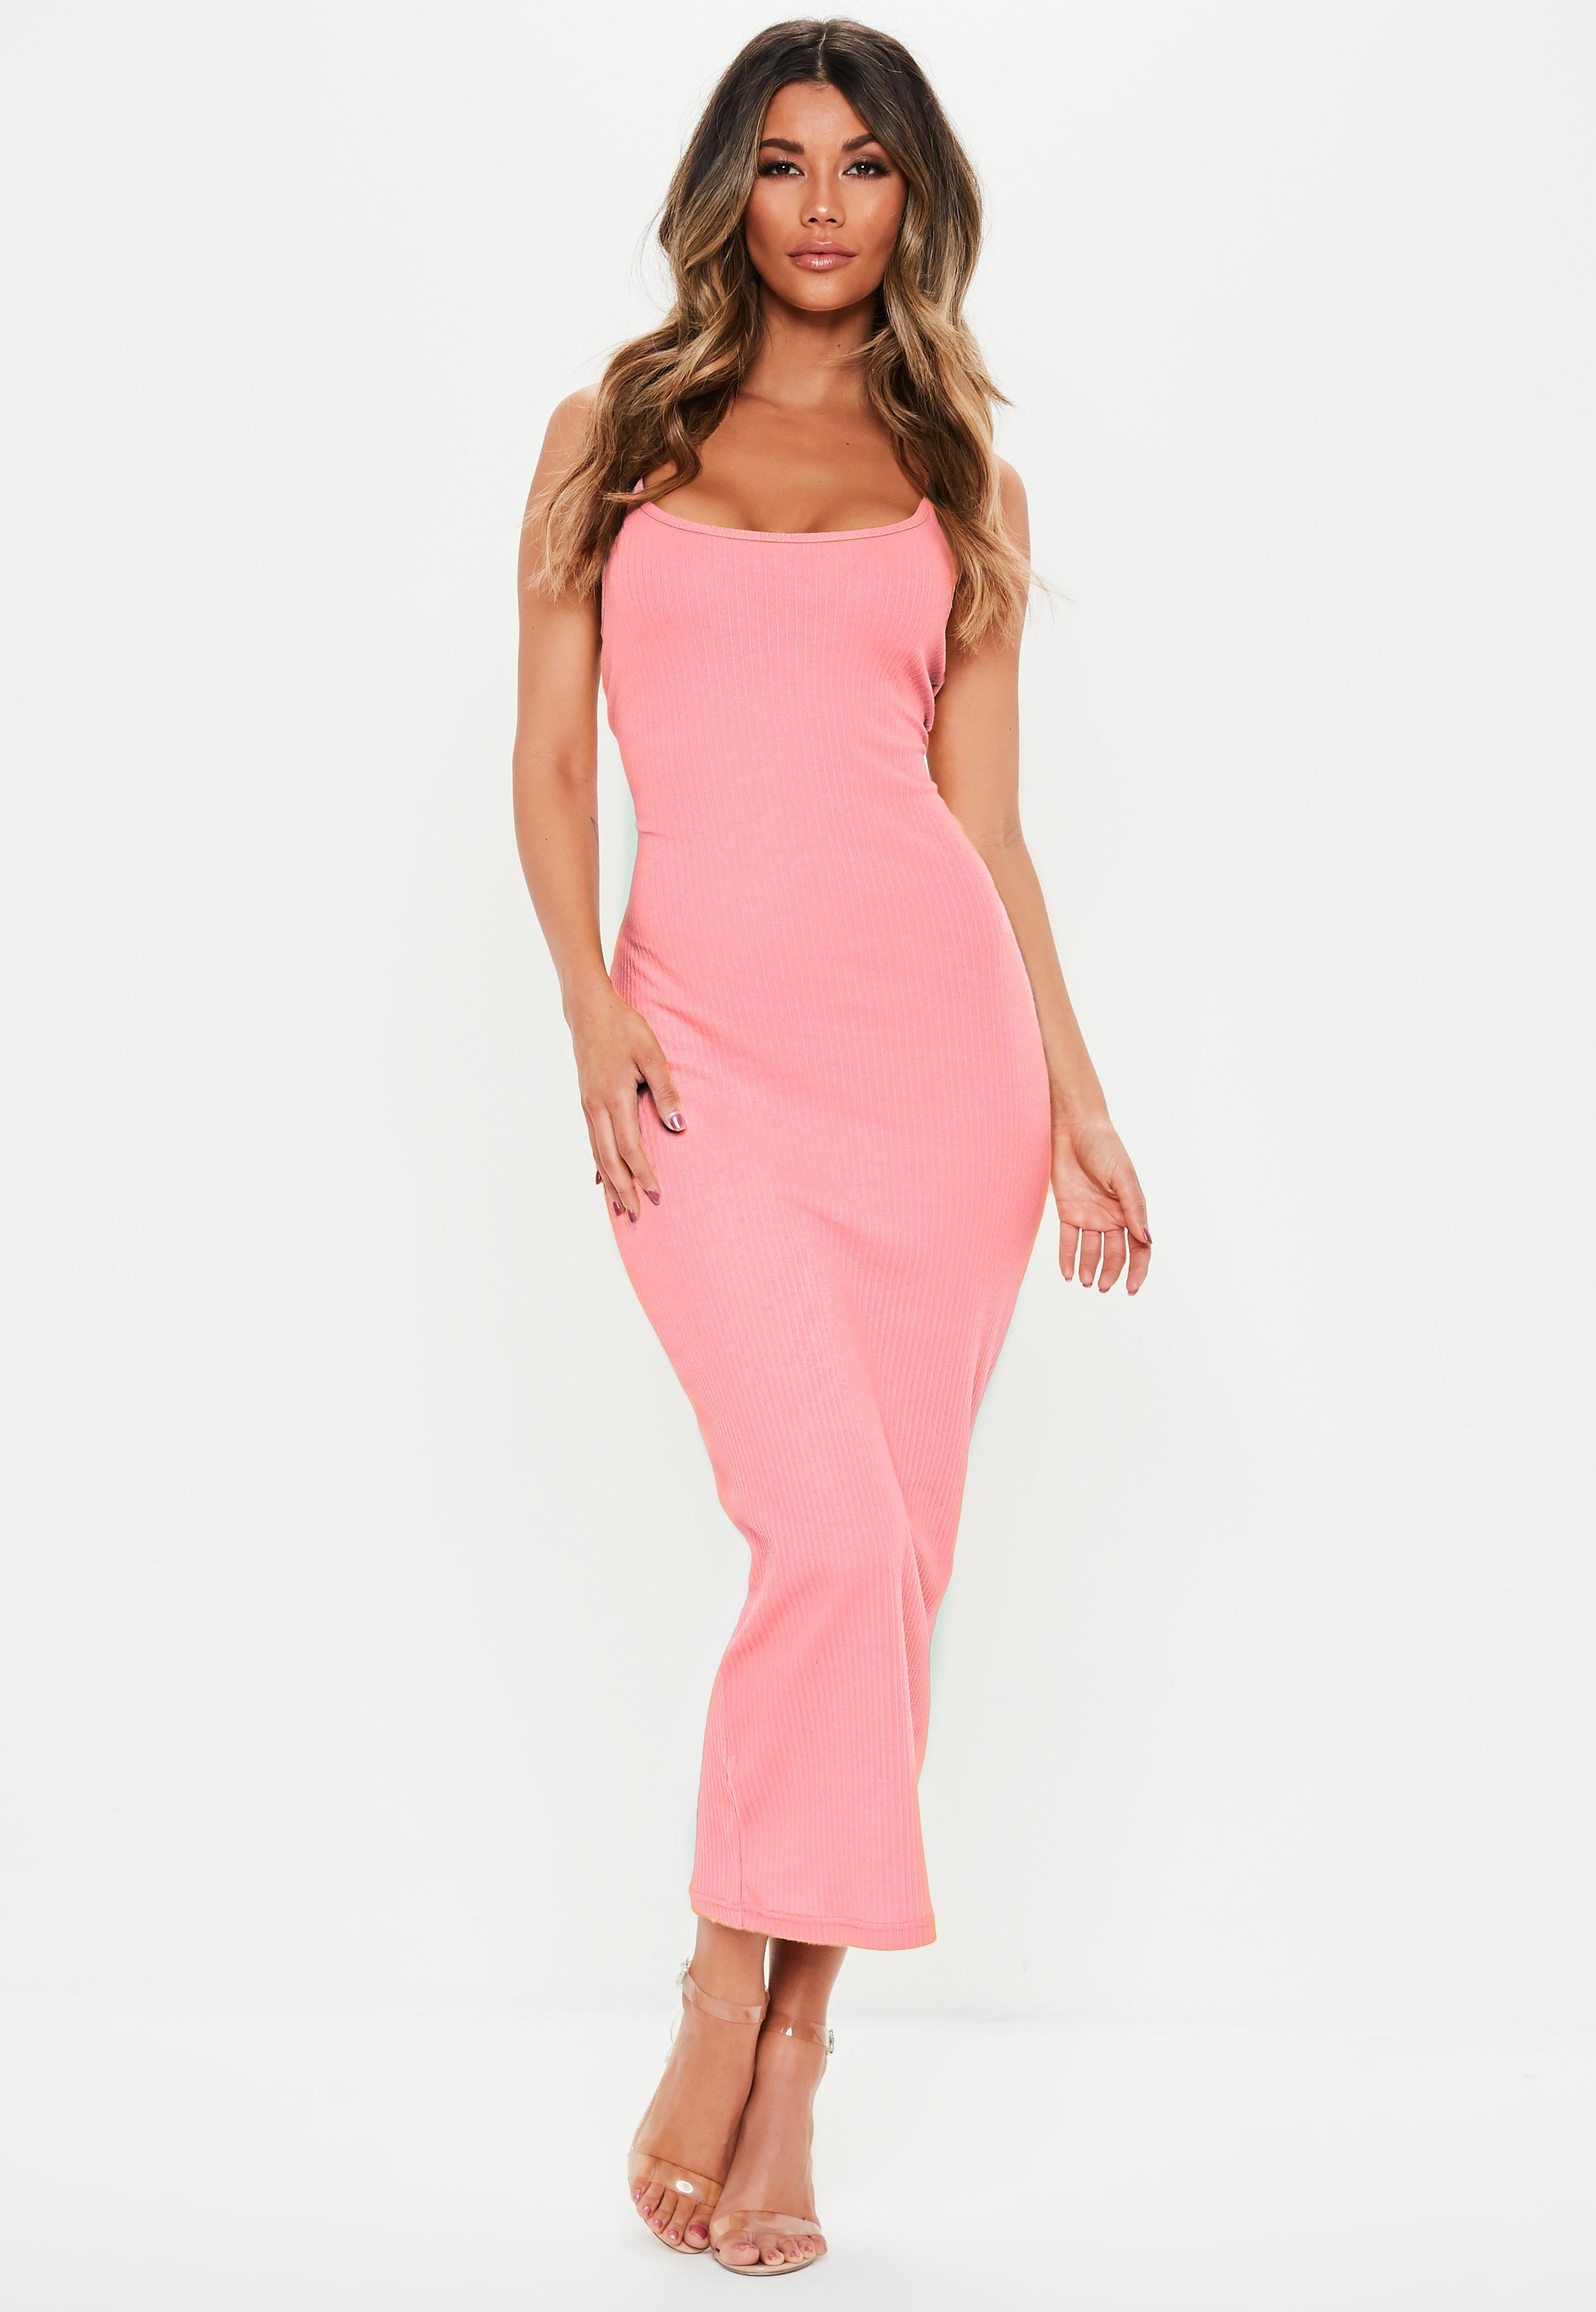 1eff4e99abfb Pink Bodycon Dresses | Coral & Pastel Bodycon Dresses | Missguided